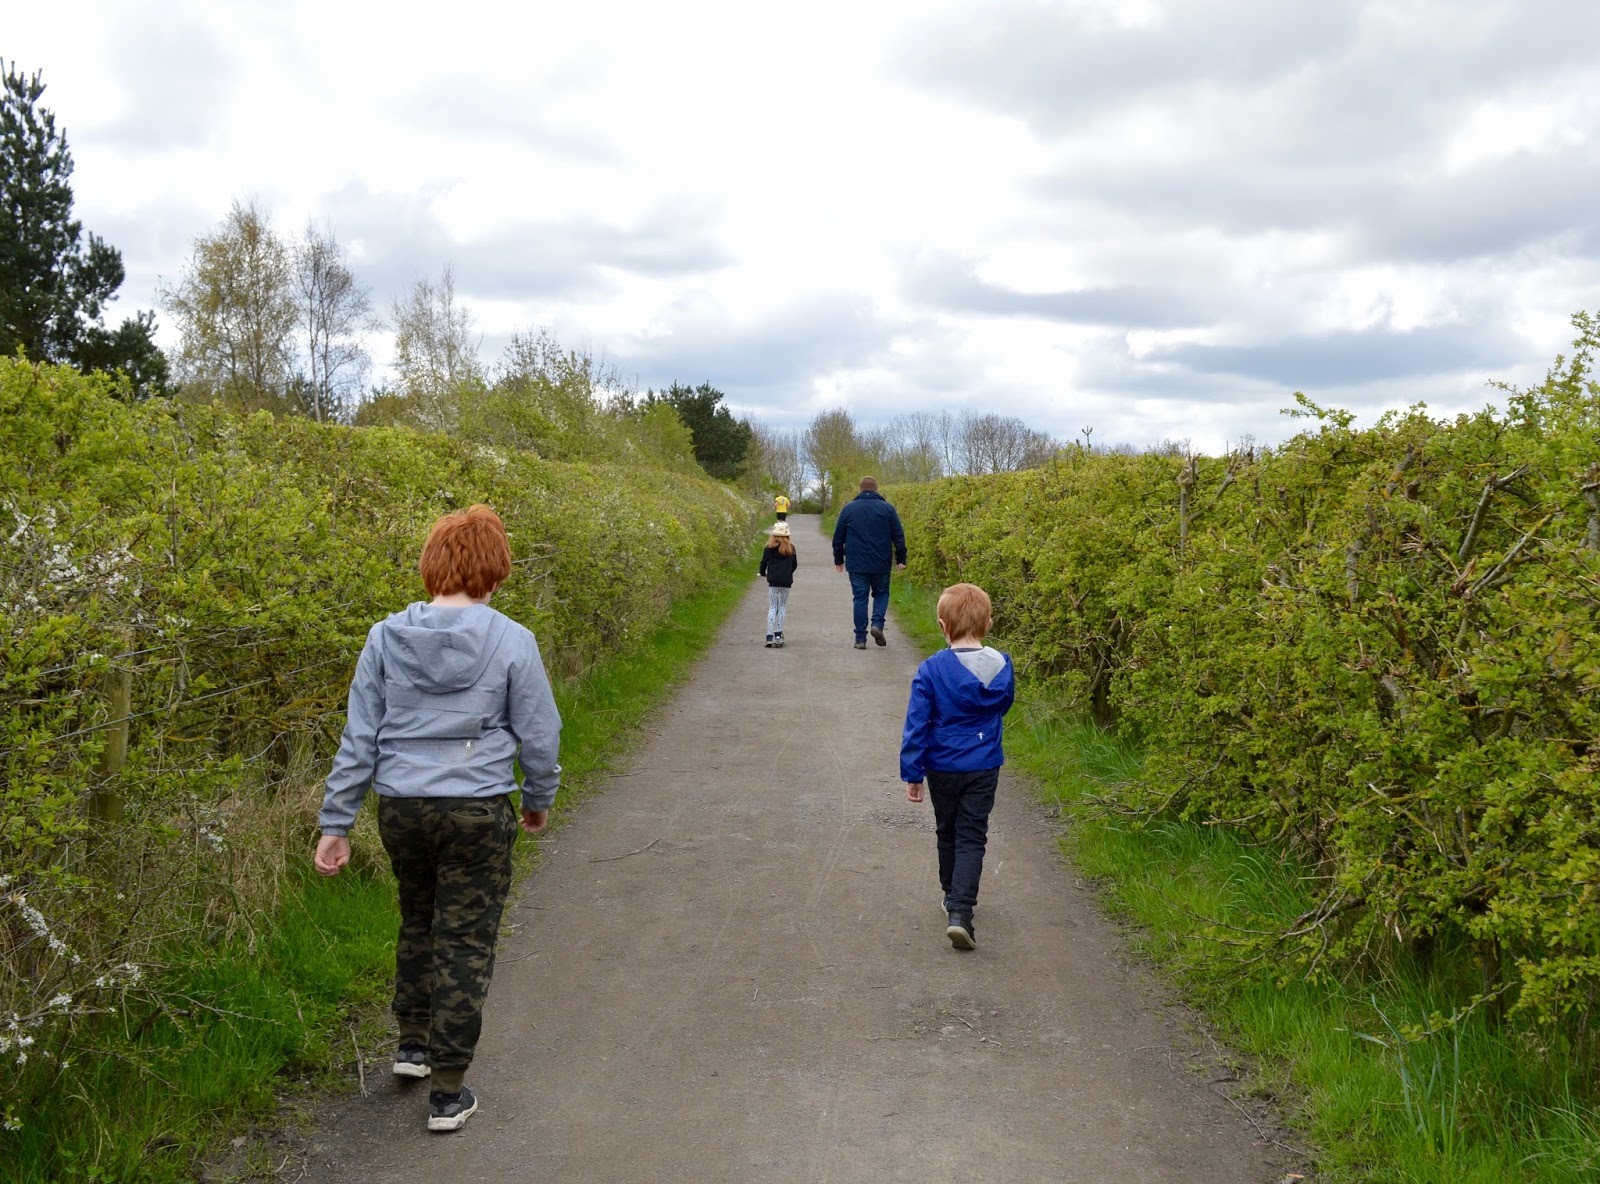 10 of the best family walks in North East England with a cafe and play park nearby - Rising Sun Country Park